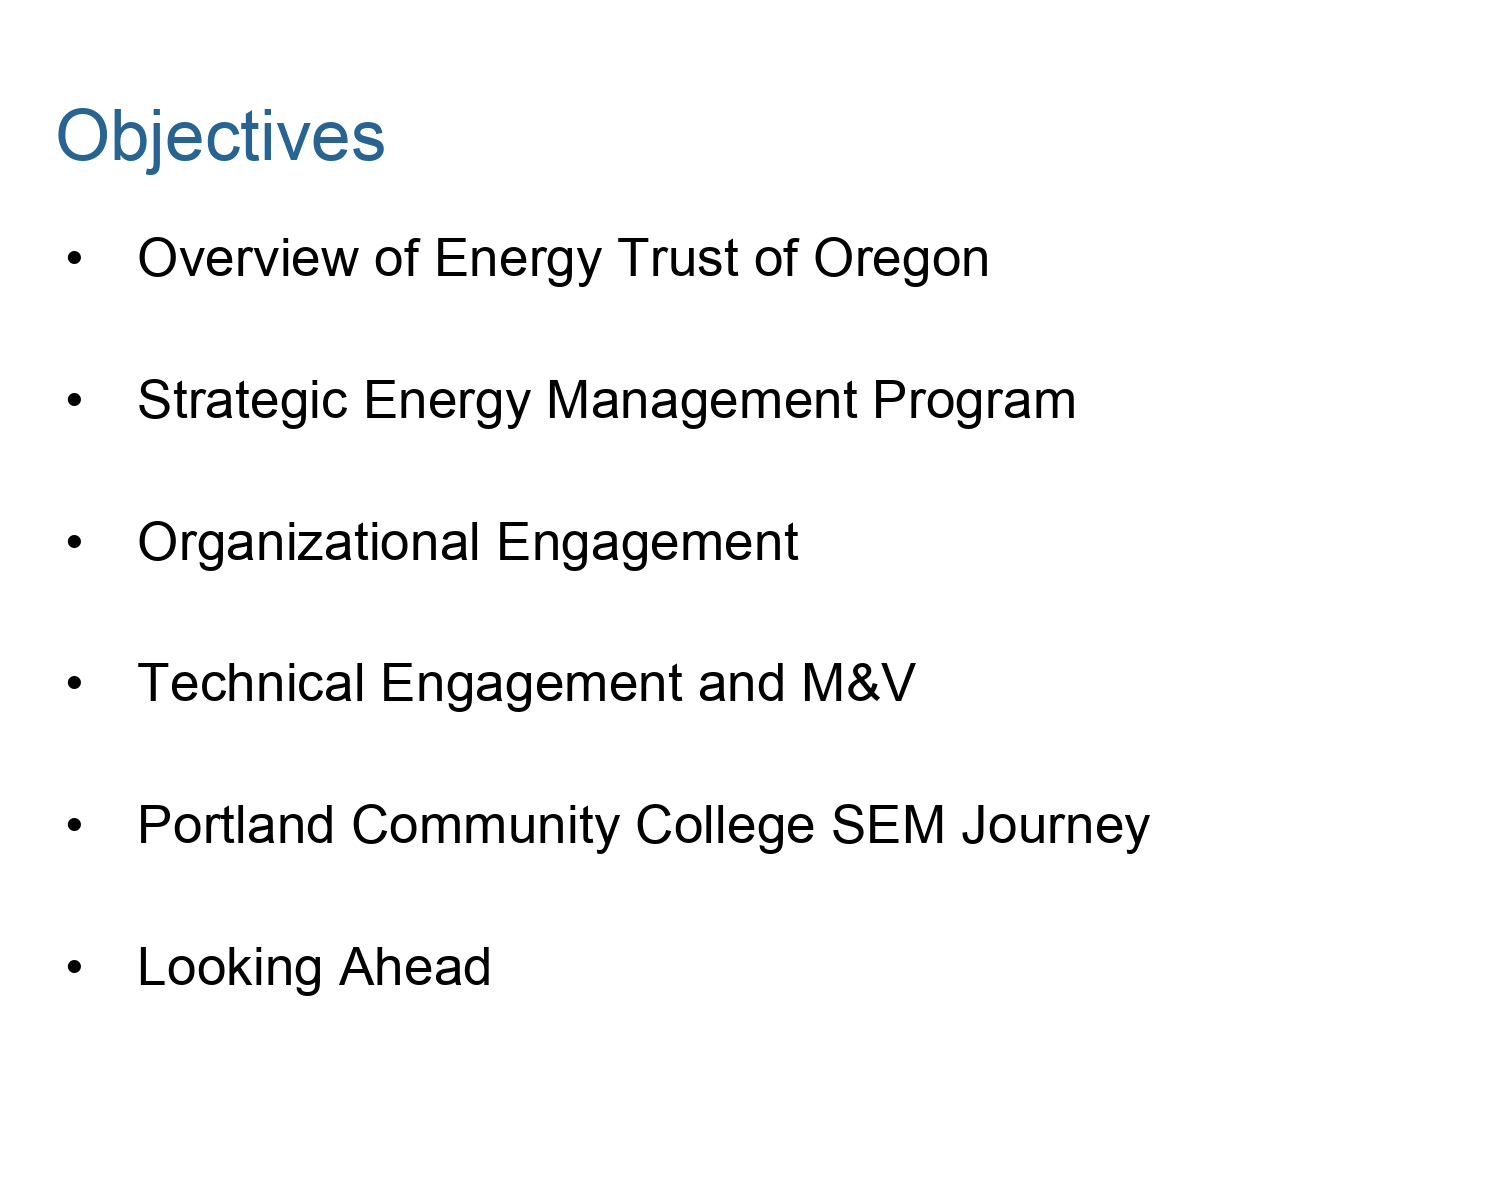 PCC Objectives from PCC Energy Plan